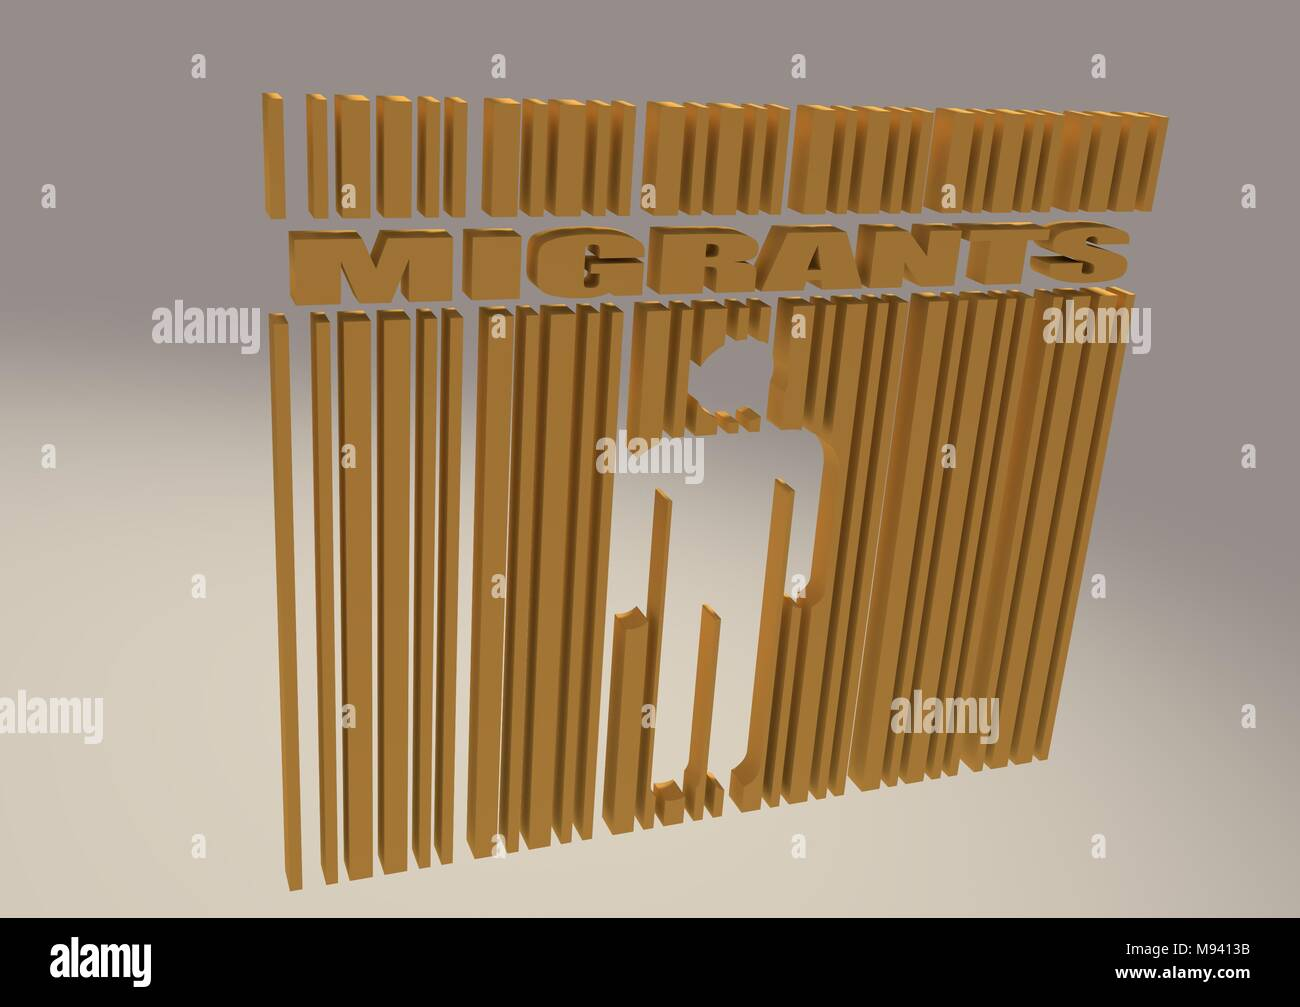 migrants word and human icon in bar code - Stock Image